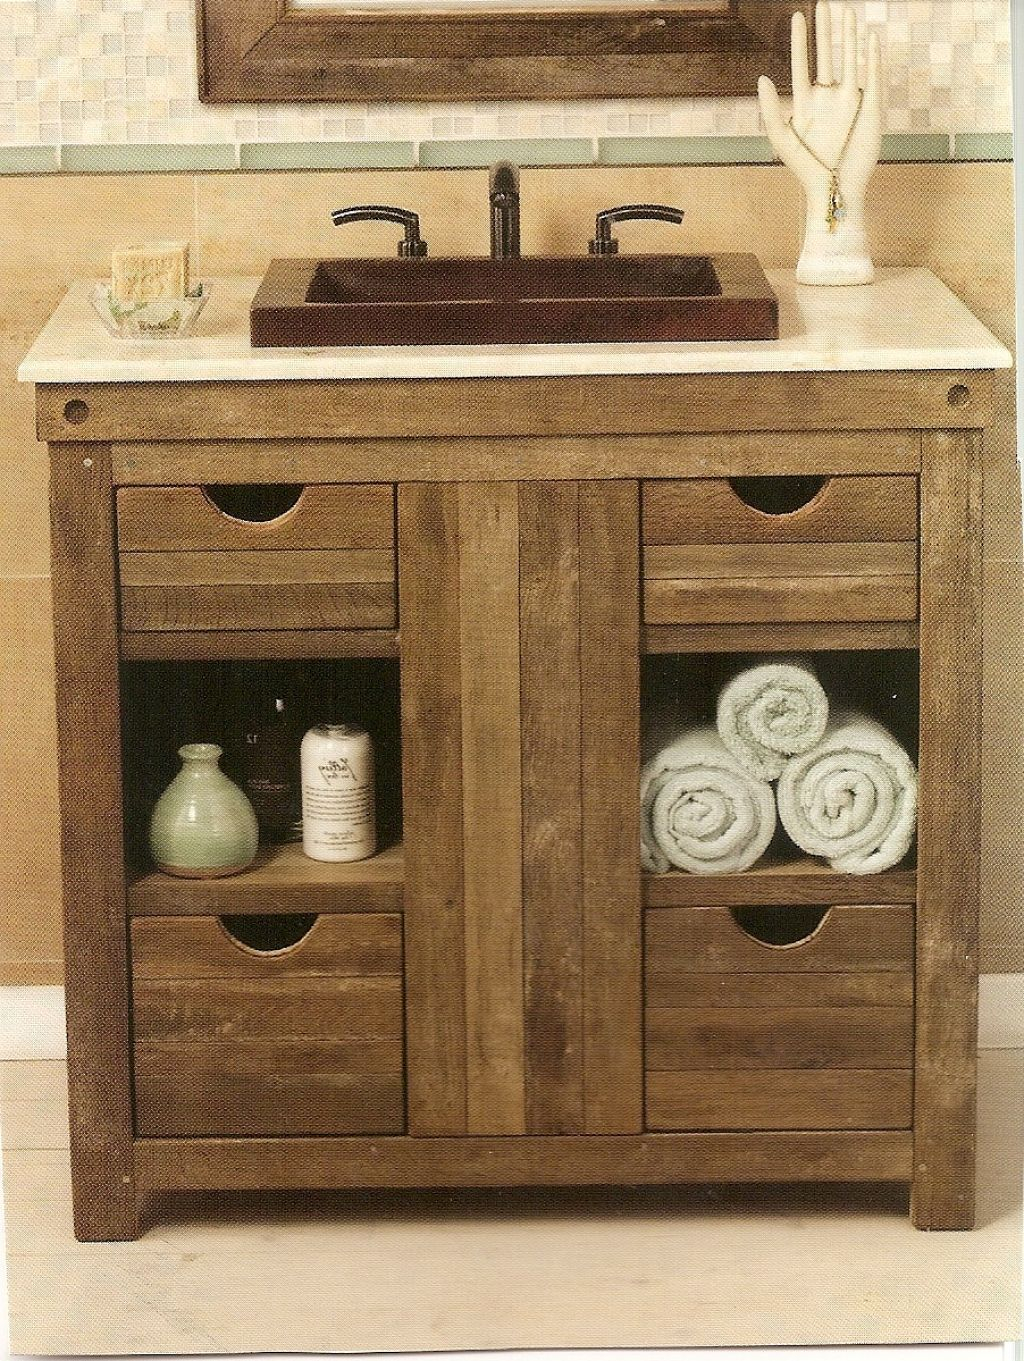 25 Incredible Vanities For Small Bathrooms With Examples Images in dimensions 1024 X 1361